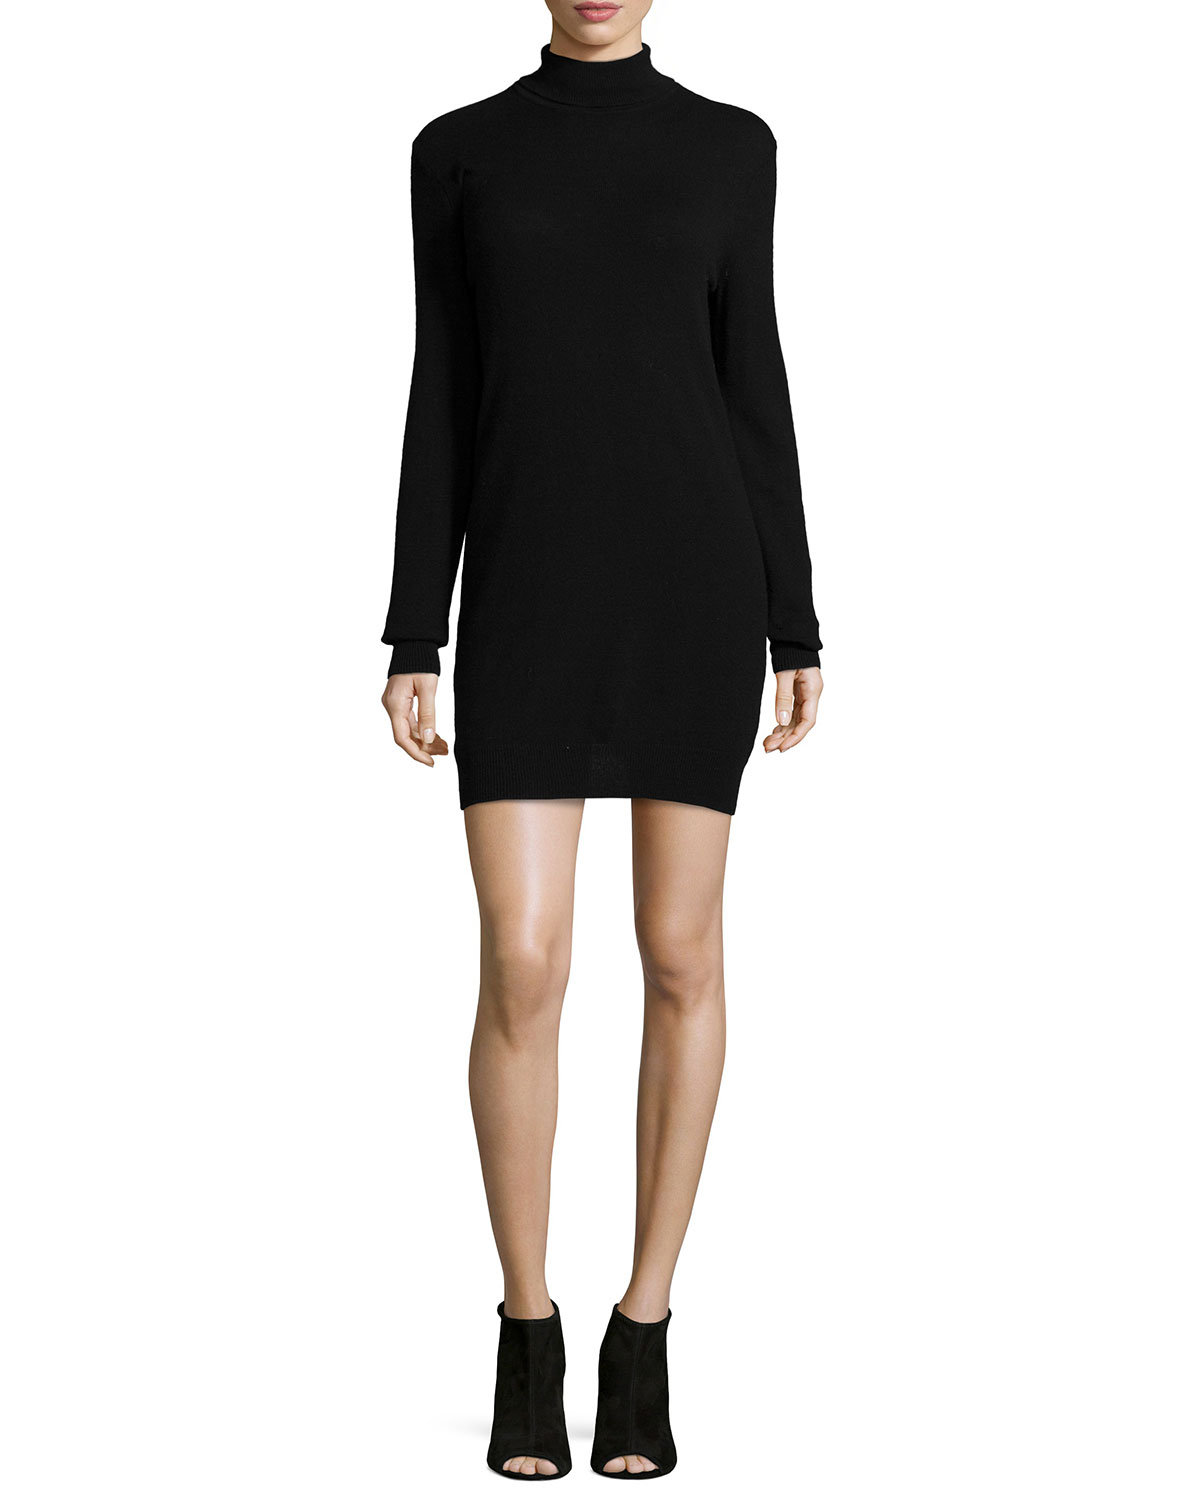 Oscar Long-Sleeve Cashmere Turtleneck Dress, Size: X-SMALL, BLACK - Equipment